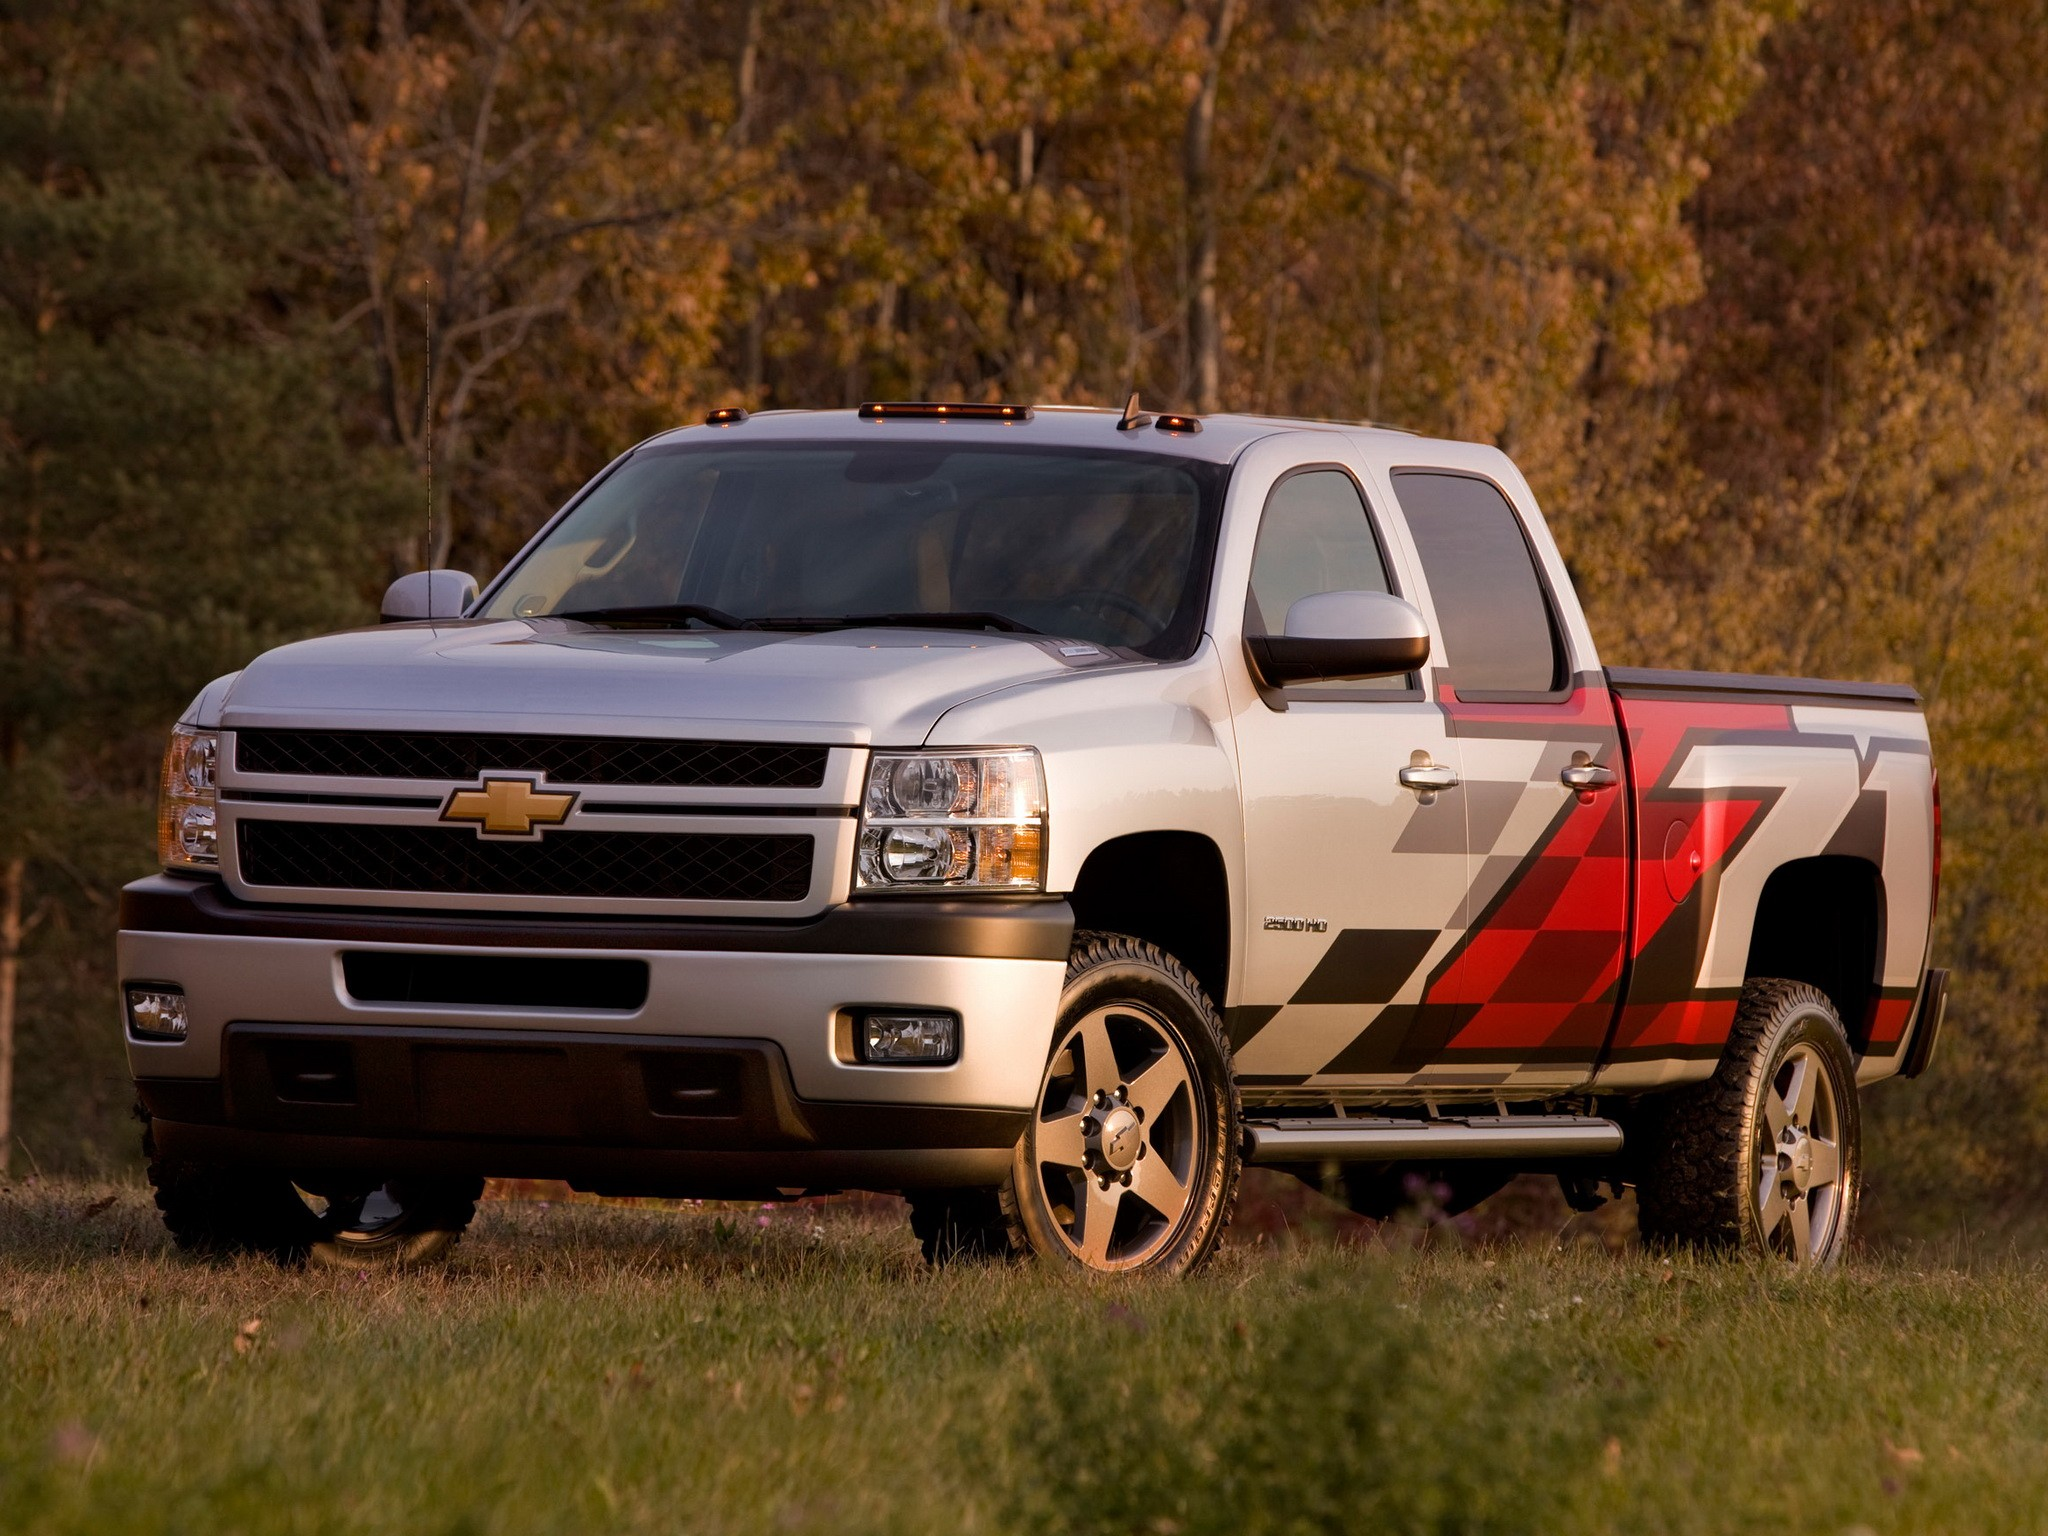 CHEVROLET Silverado 2500HD Crew Cab specs & photos - 2008 ...